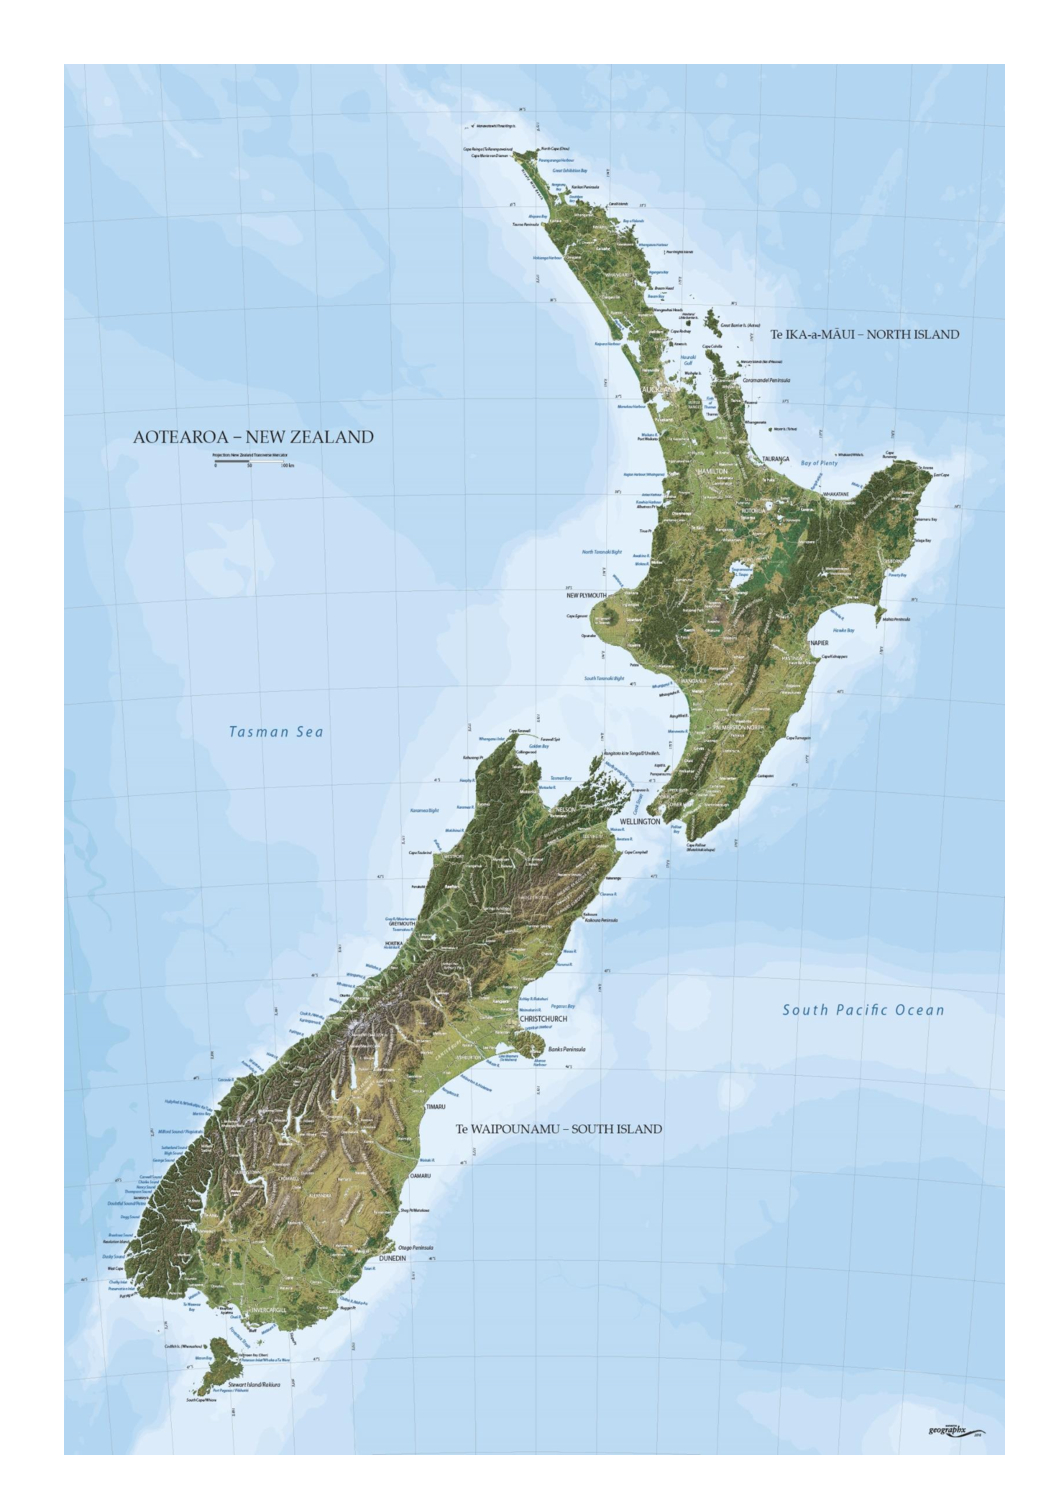 New Zealand Geographx Map Mapco Nz Ltd Maori Pacific Island And